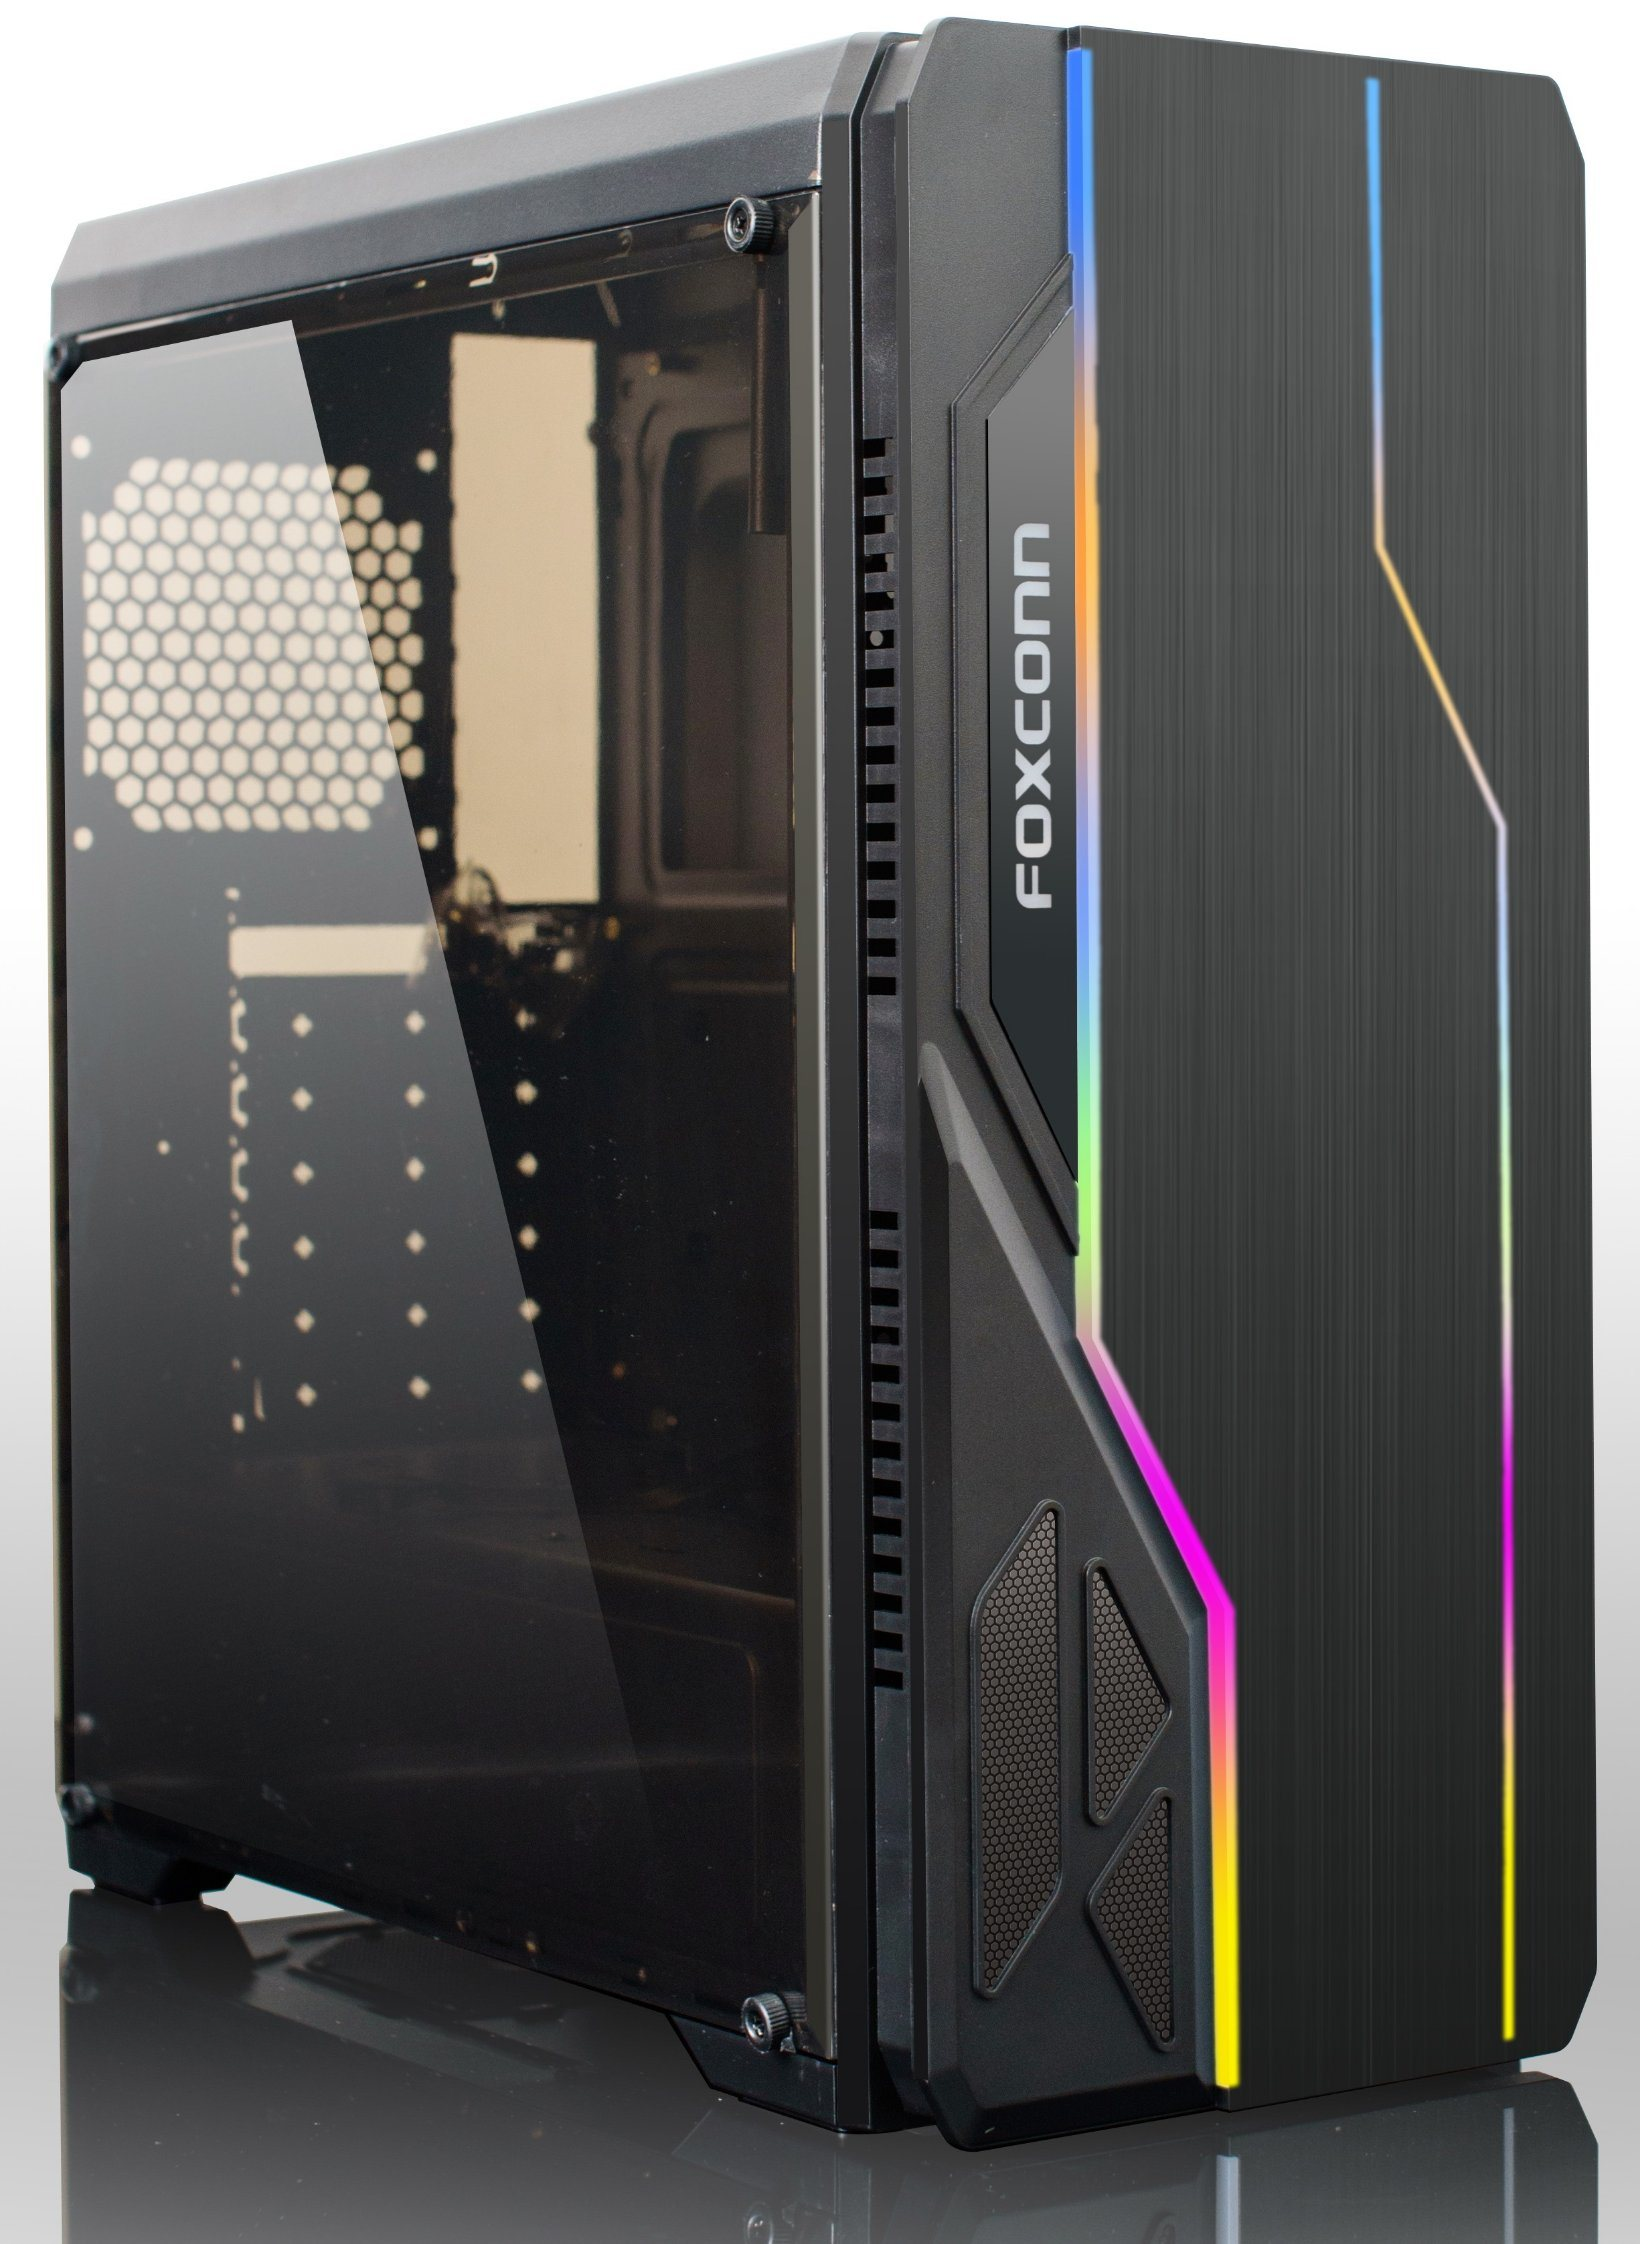 Case Pc Hot Item Hot Sale Computer Pc Case With Full Glass Window And Rgb Strip